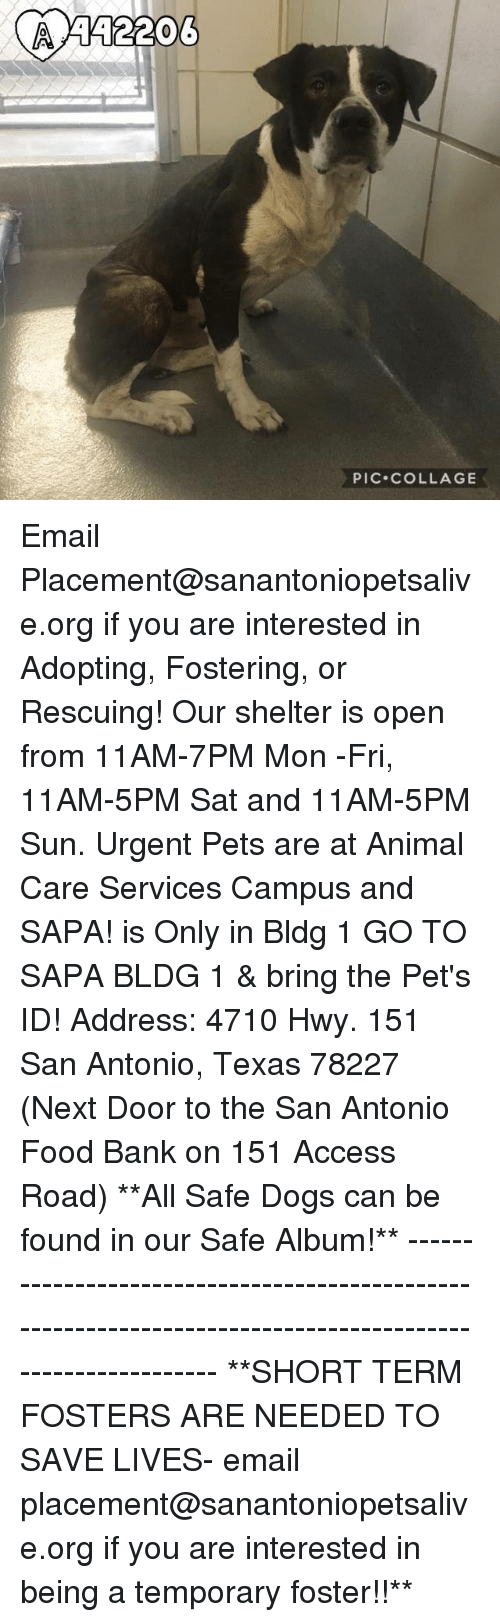 Dogs, Food, and Memes: PIC.COLLAGE Email Placement@sanantoniopetsalive.org if you are interested in Adopting, Fostering, or Rescuing!  Our shelter is open from 11AM-7PM Mon -Fri, 11AM-5PM Sat and 11AM-5PM Sun.  Urgent Pets are at Animal Care Services Campus and SAPA! is Only in Bldg 1 GO TO SAPA BLDG 1 & bring the Pet's ID! Address: 4710 Hwy. 151 San Antonio, Texas 78227 (Next Door to the San Antonio Food Bank on 151 Access Road)  **All Safe Dogs can be found in our Safe Album!** ---------------------------------------------------------------------------------------------------------- **SHORT TERM FOSTERS ARE NEEDED TO SAVE LIVES- email placement@sanantoniopetsalive.org if you are interested in being a temporary foster!!**